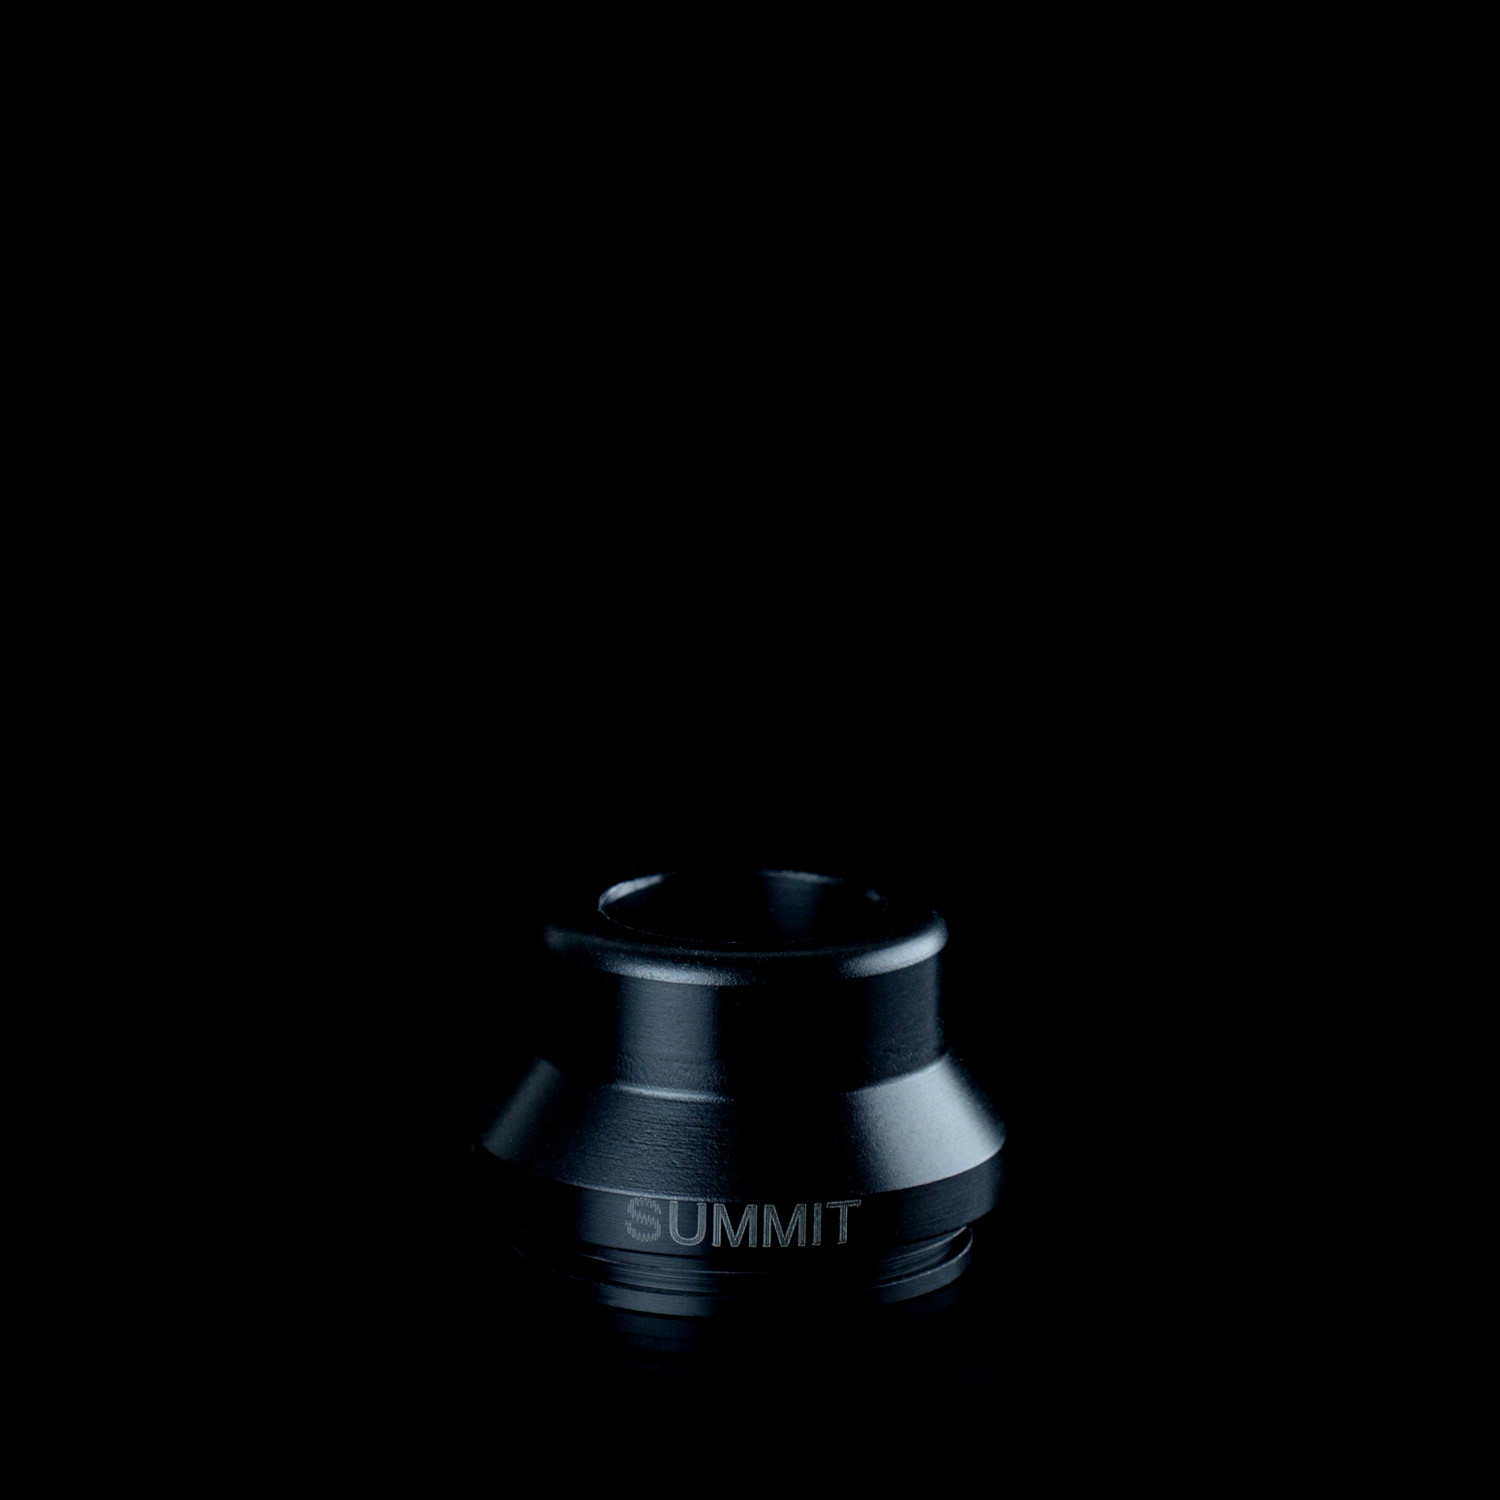 Summit by District F5ve